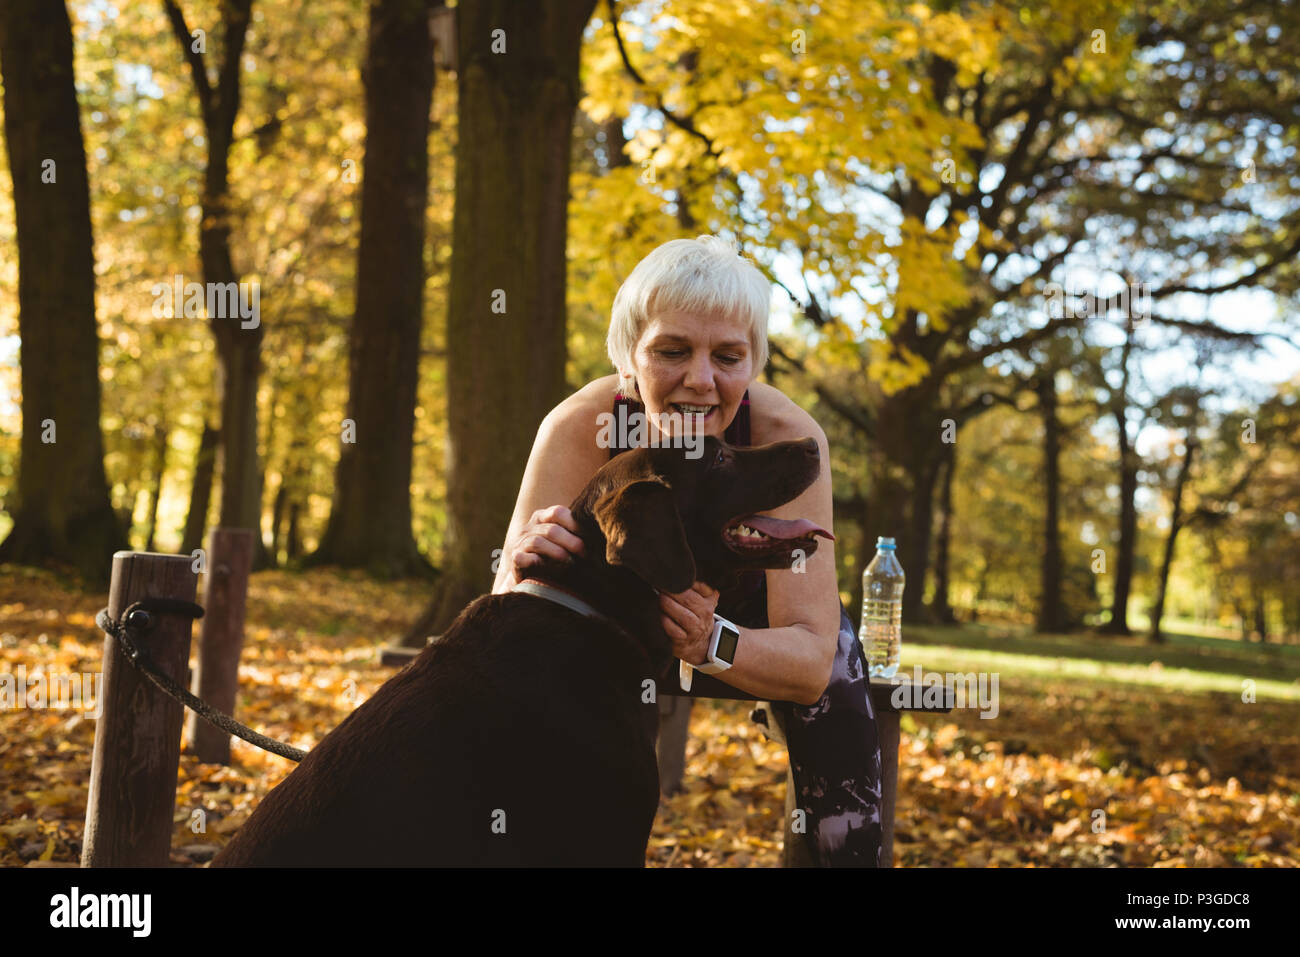 Senior woman in a park stoking her dog - Stock Image